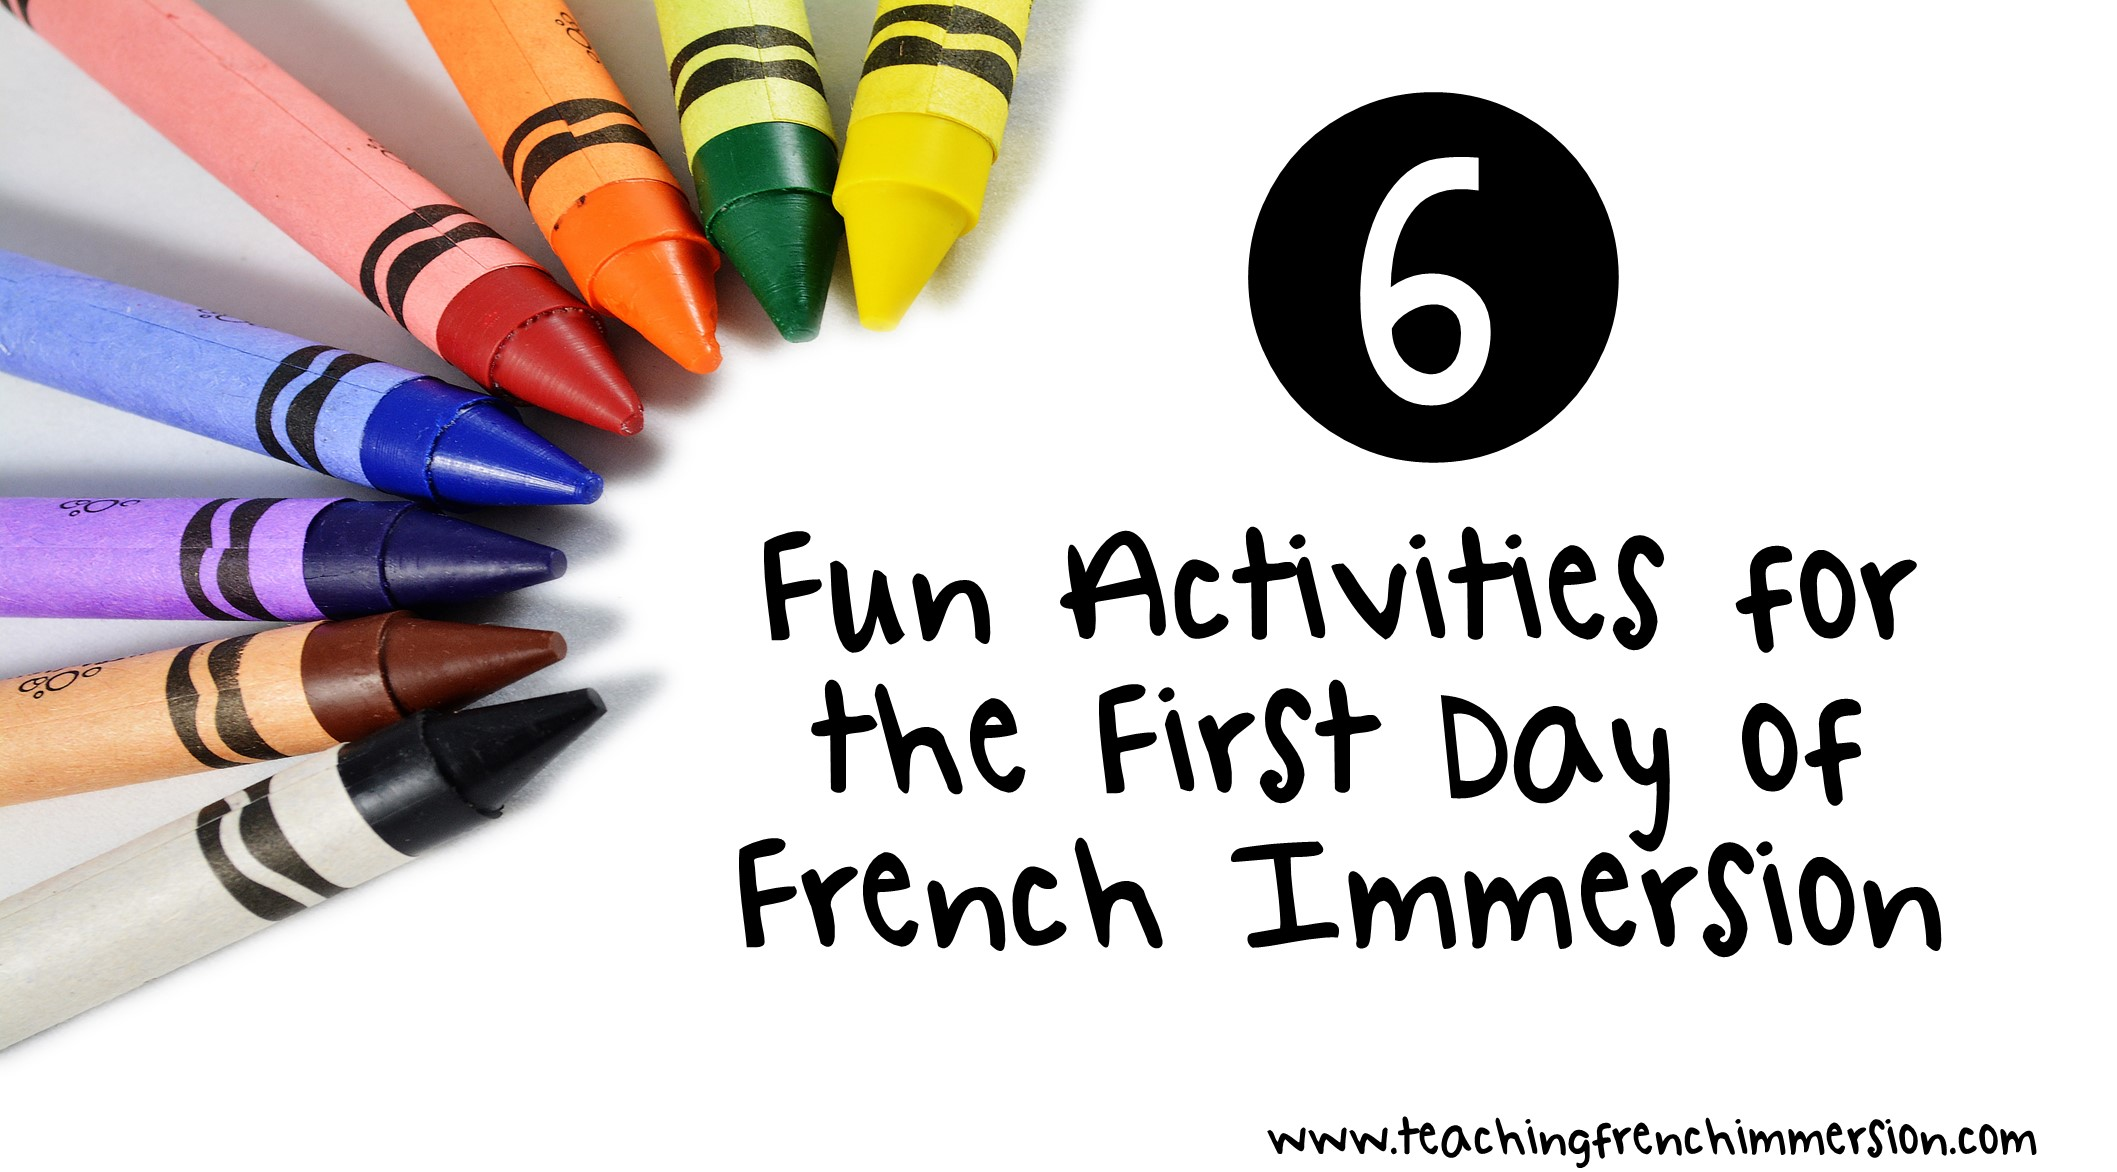 Six Fun First Day Of School Activities For French